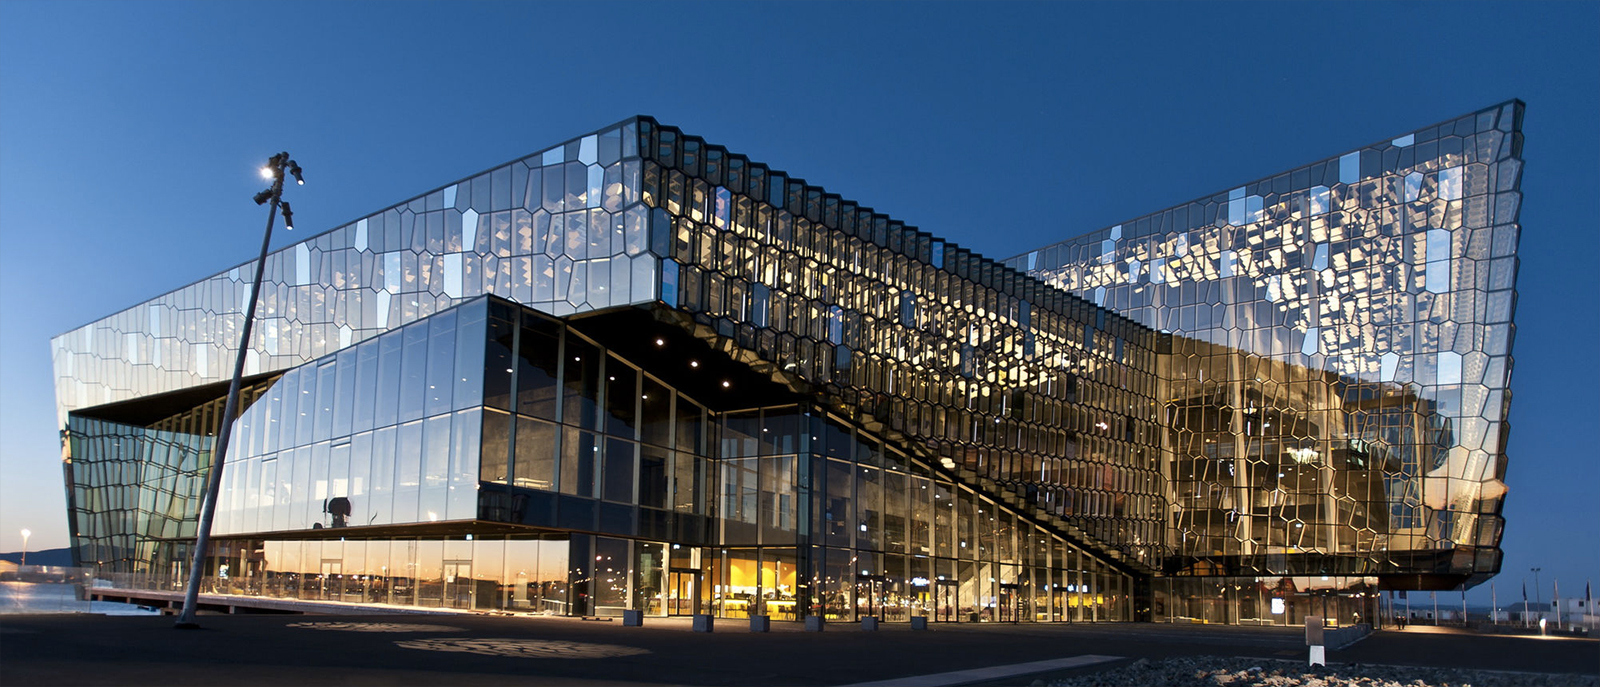 Photography: courtesy of Harpa Music Centre